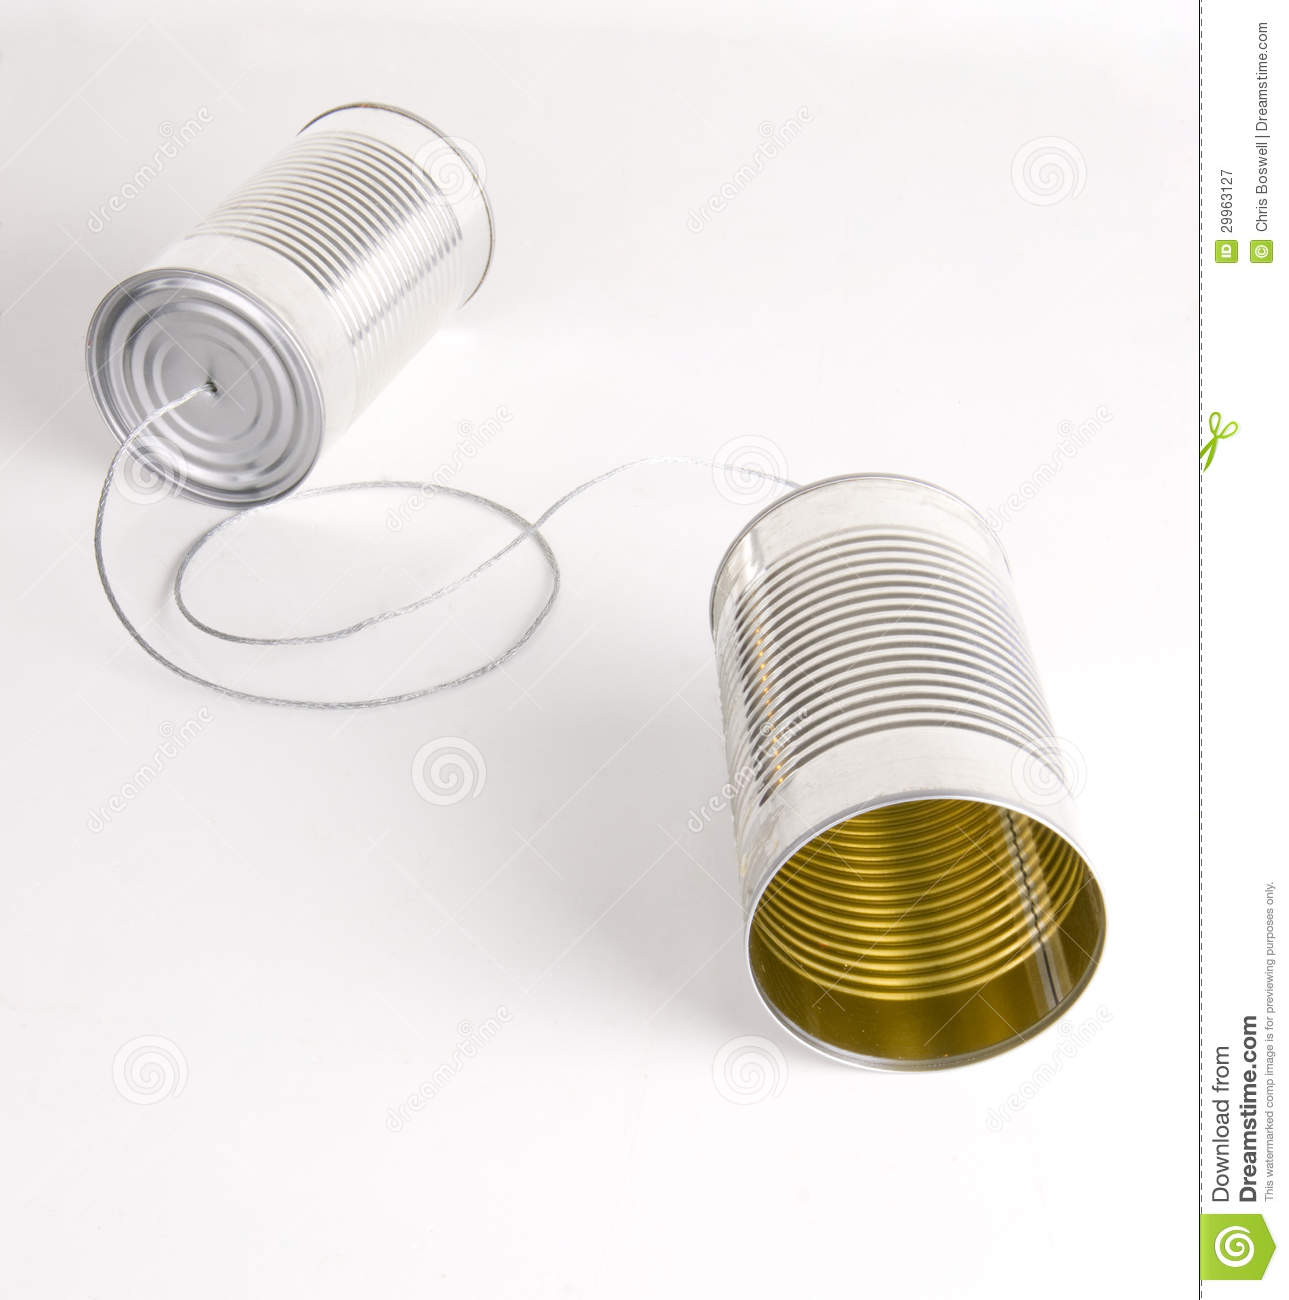 Two Cans Strung Together With Metal Wire Walkie Talkie Stock Image ...